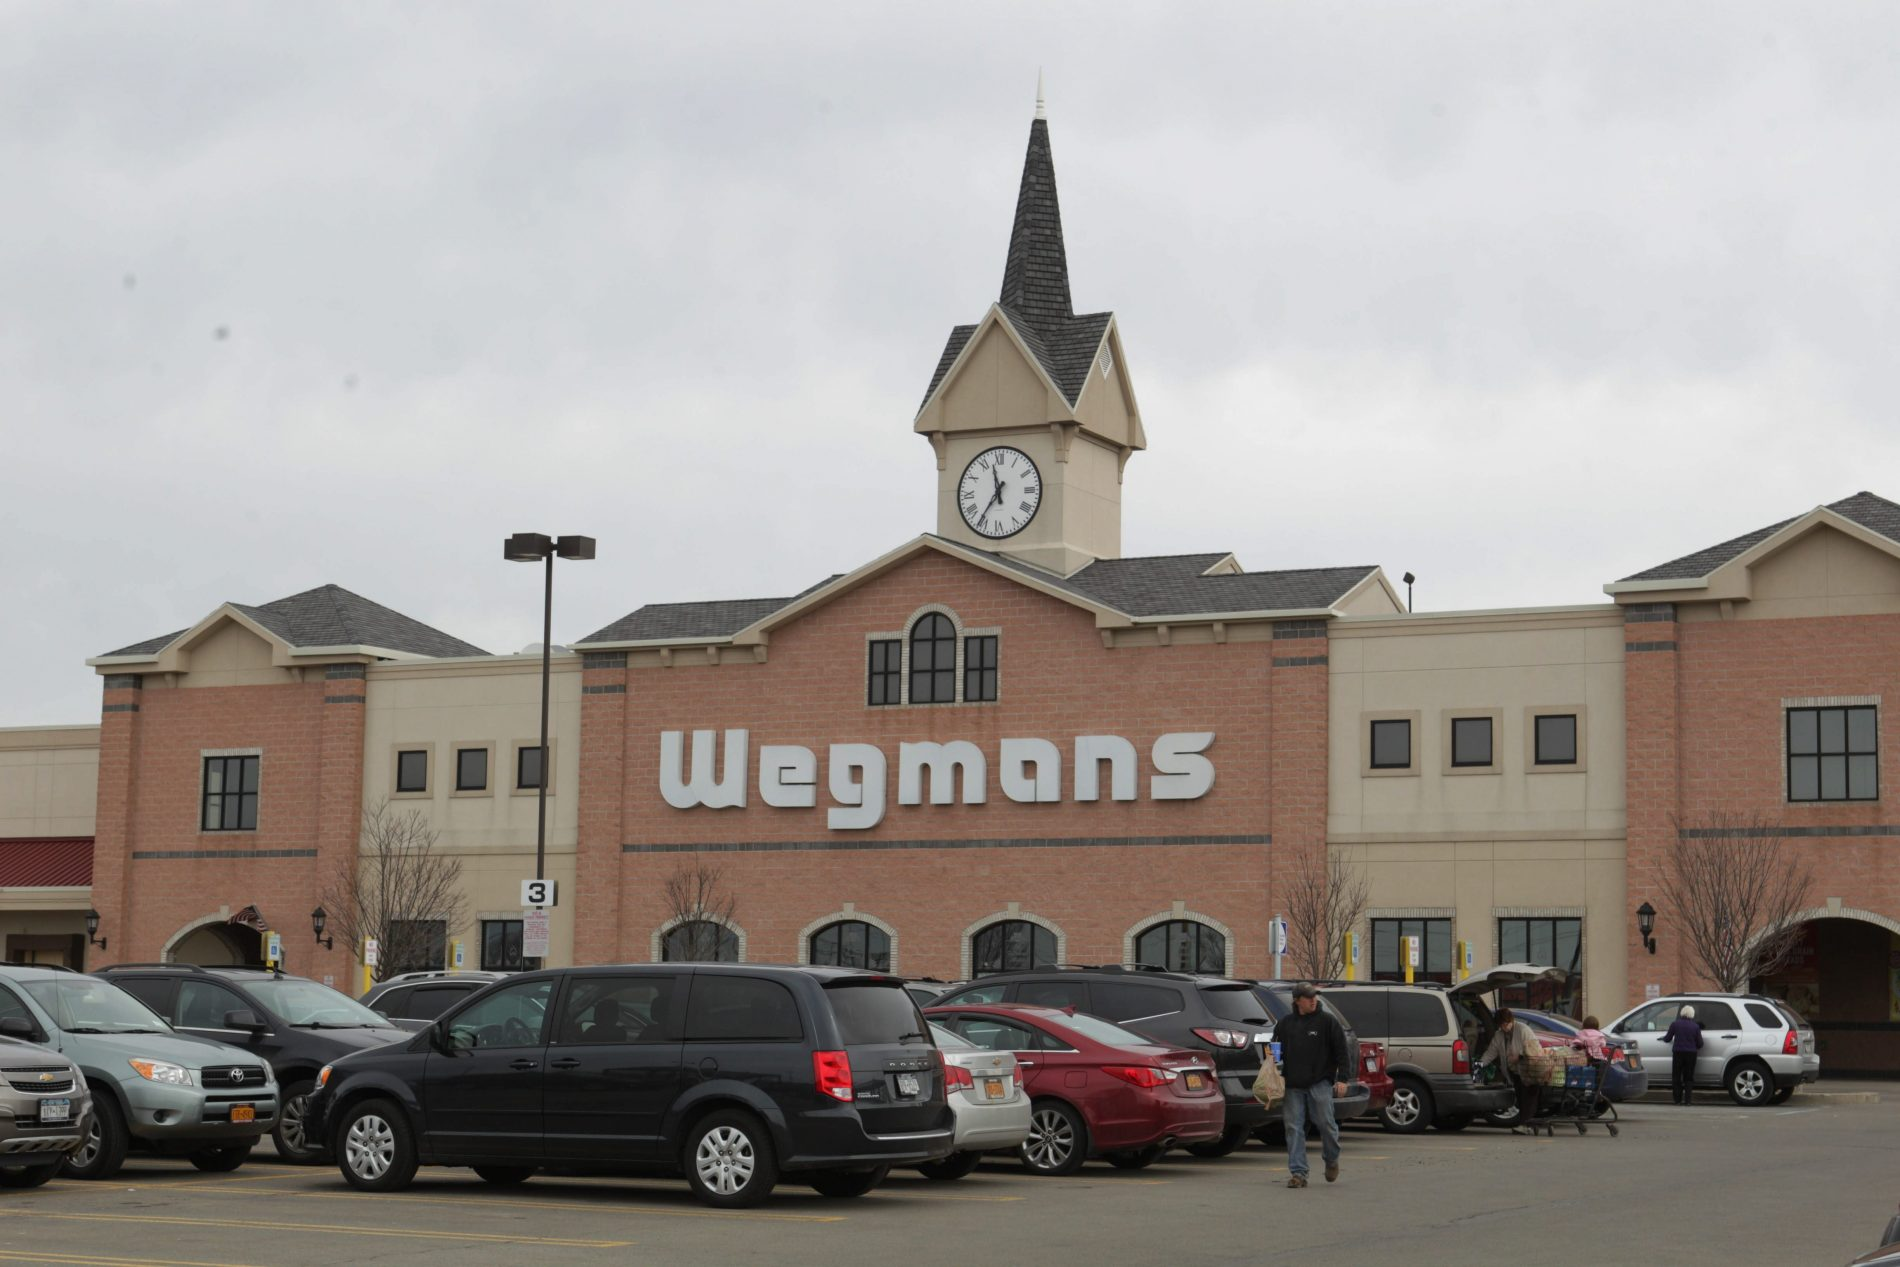 Wegmans, shown here in Western New York, also has locations in Virginia.  (Sharon Cantillon/Buffalo News file photo)